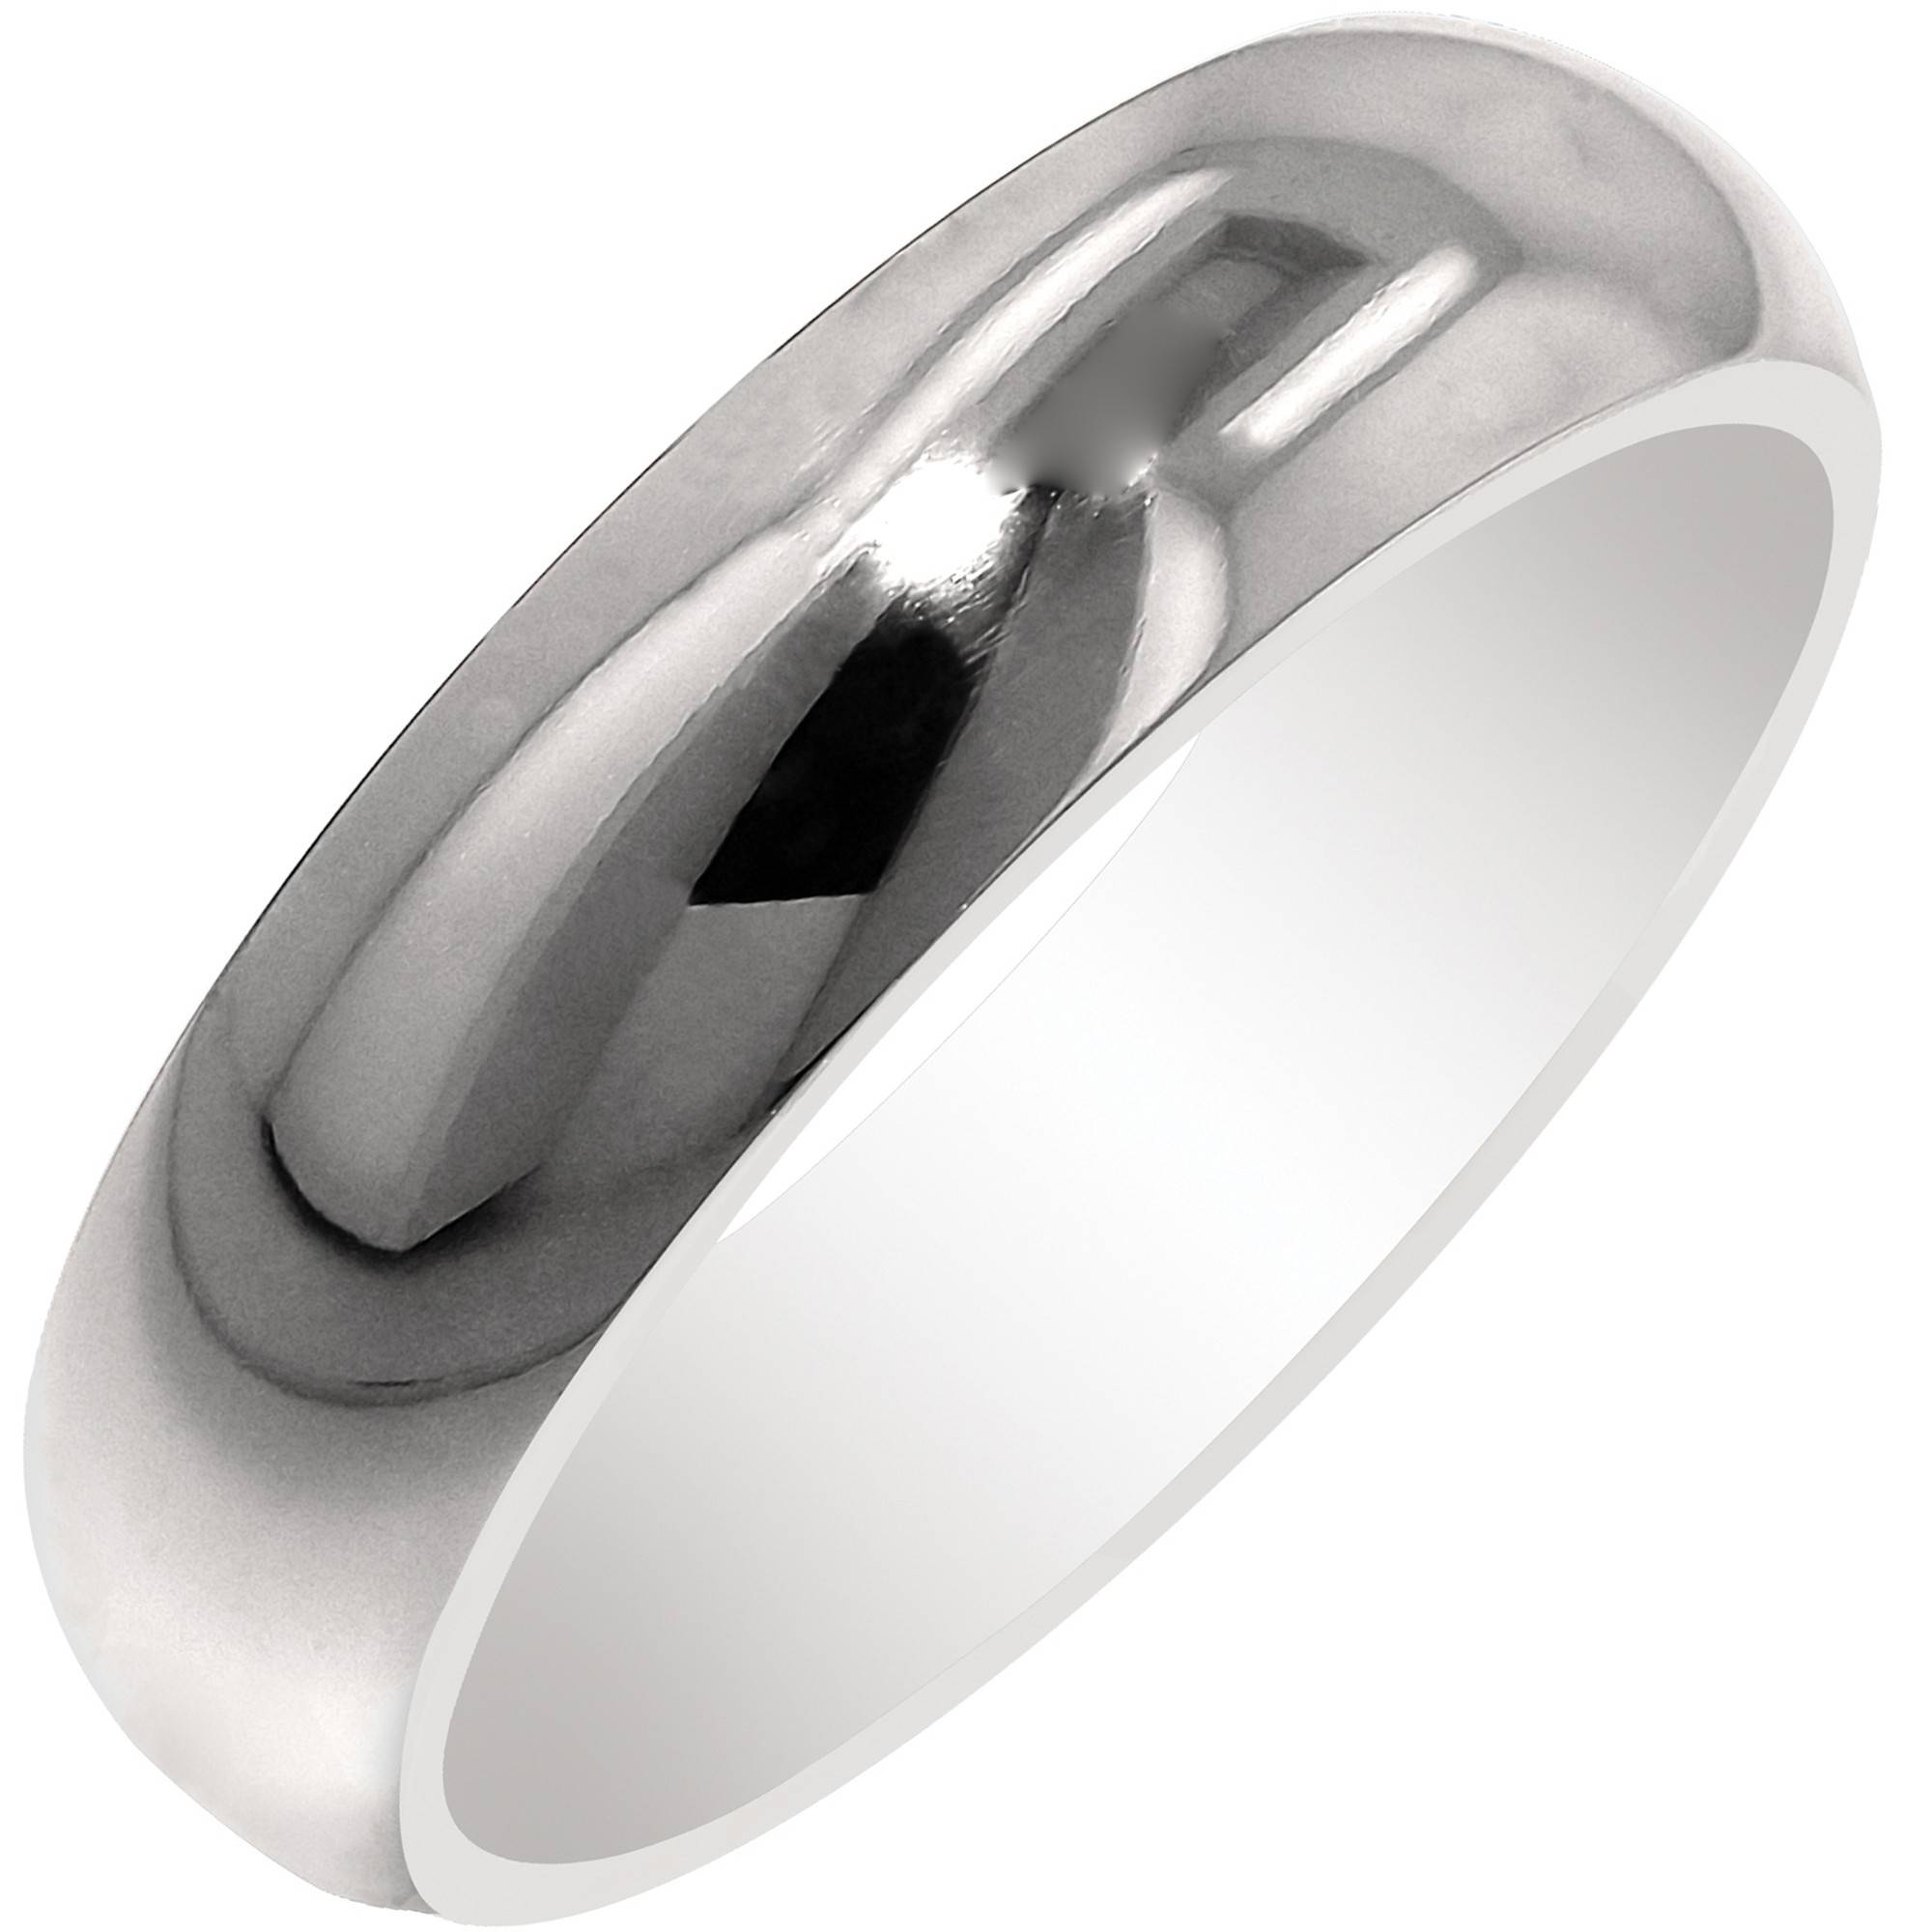 Artcarved Honor Mens Plain Wedding Band In Titanium (6mm) Intended For Artcarved Men Wedding Bands (View 9 of 15)